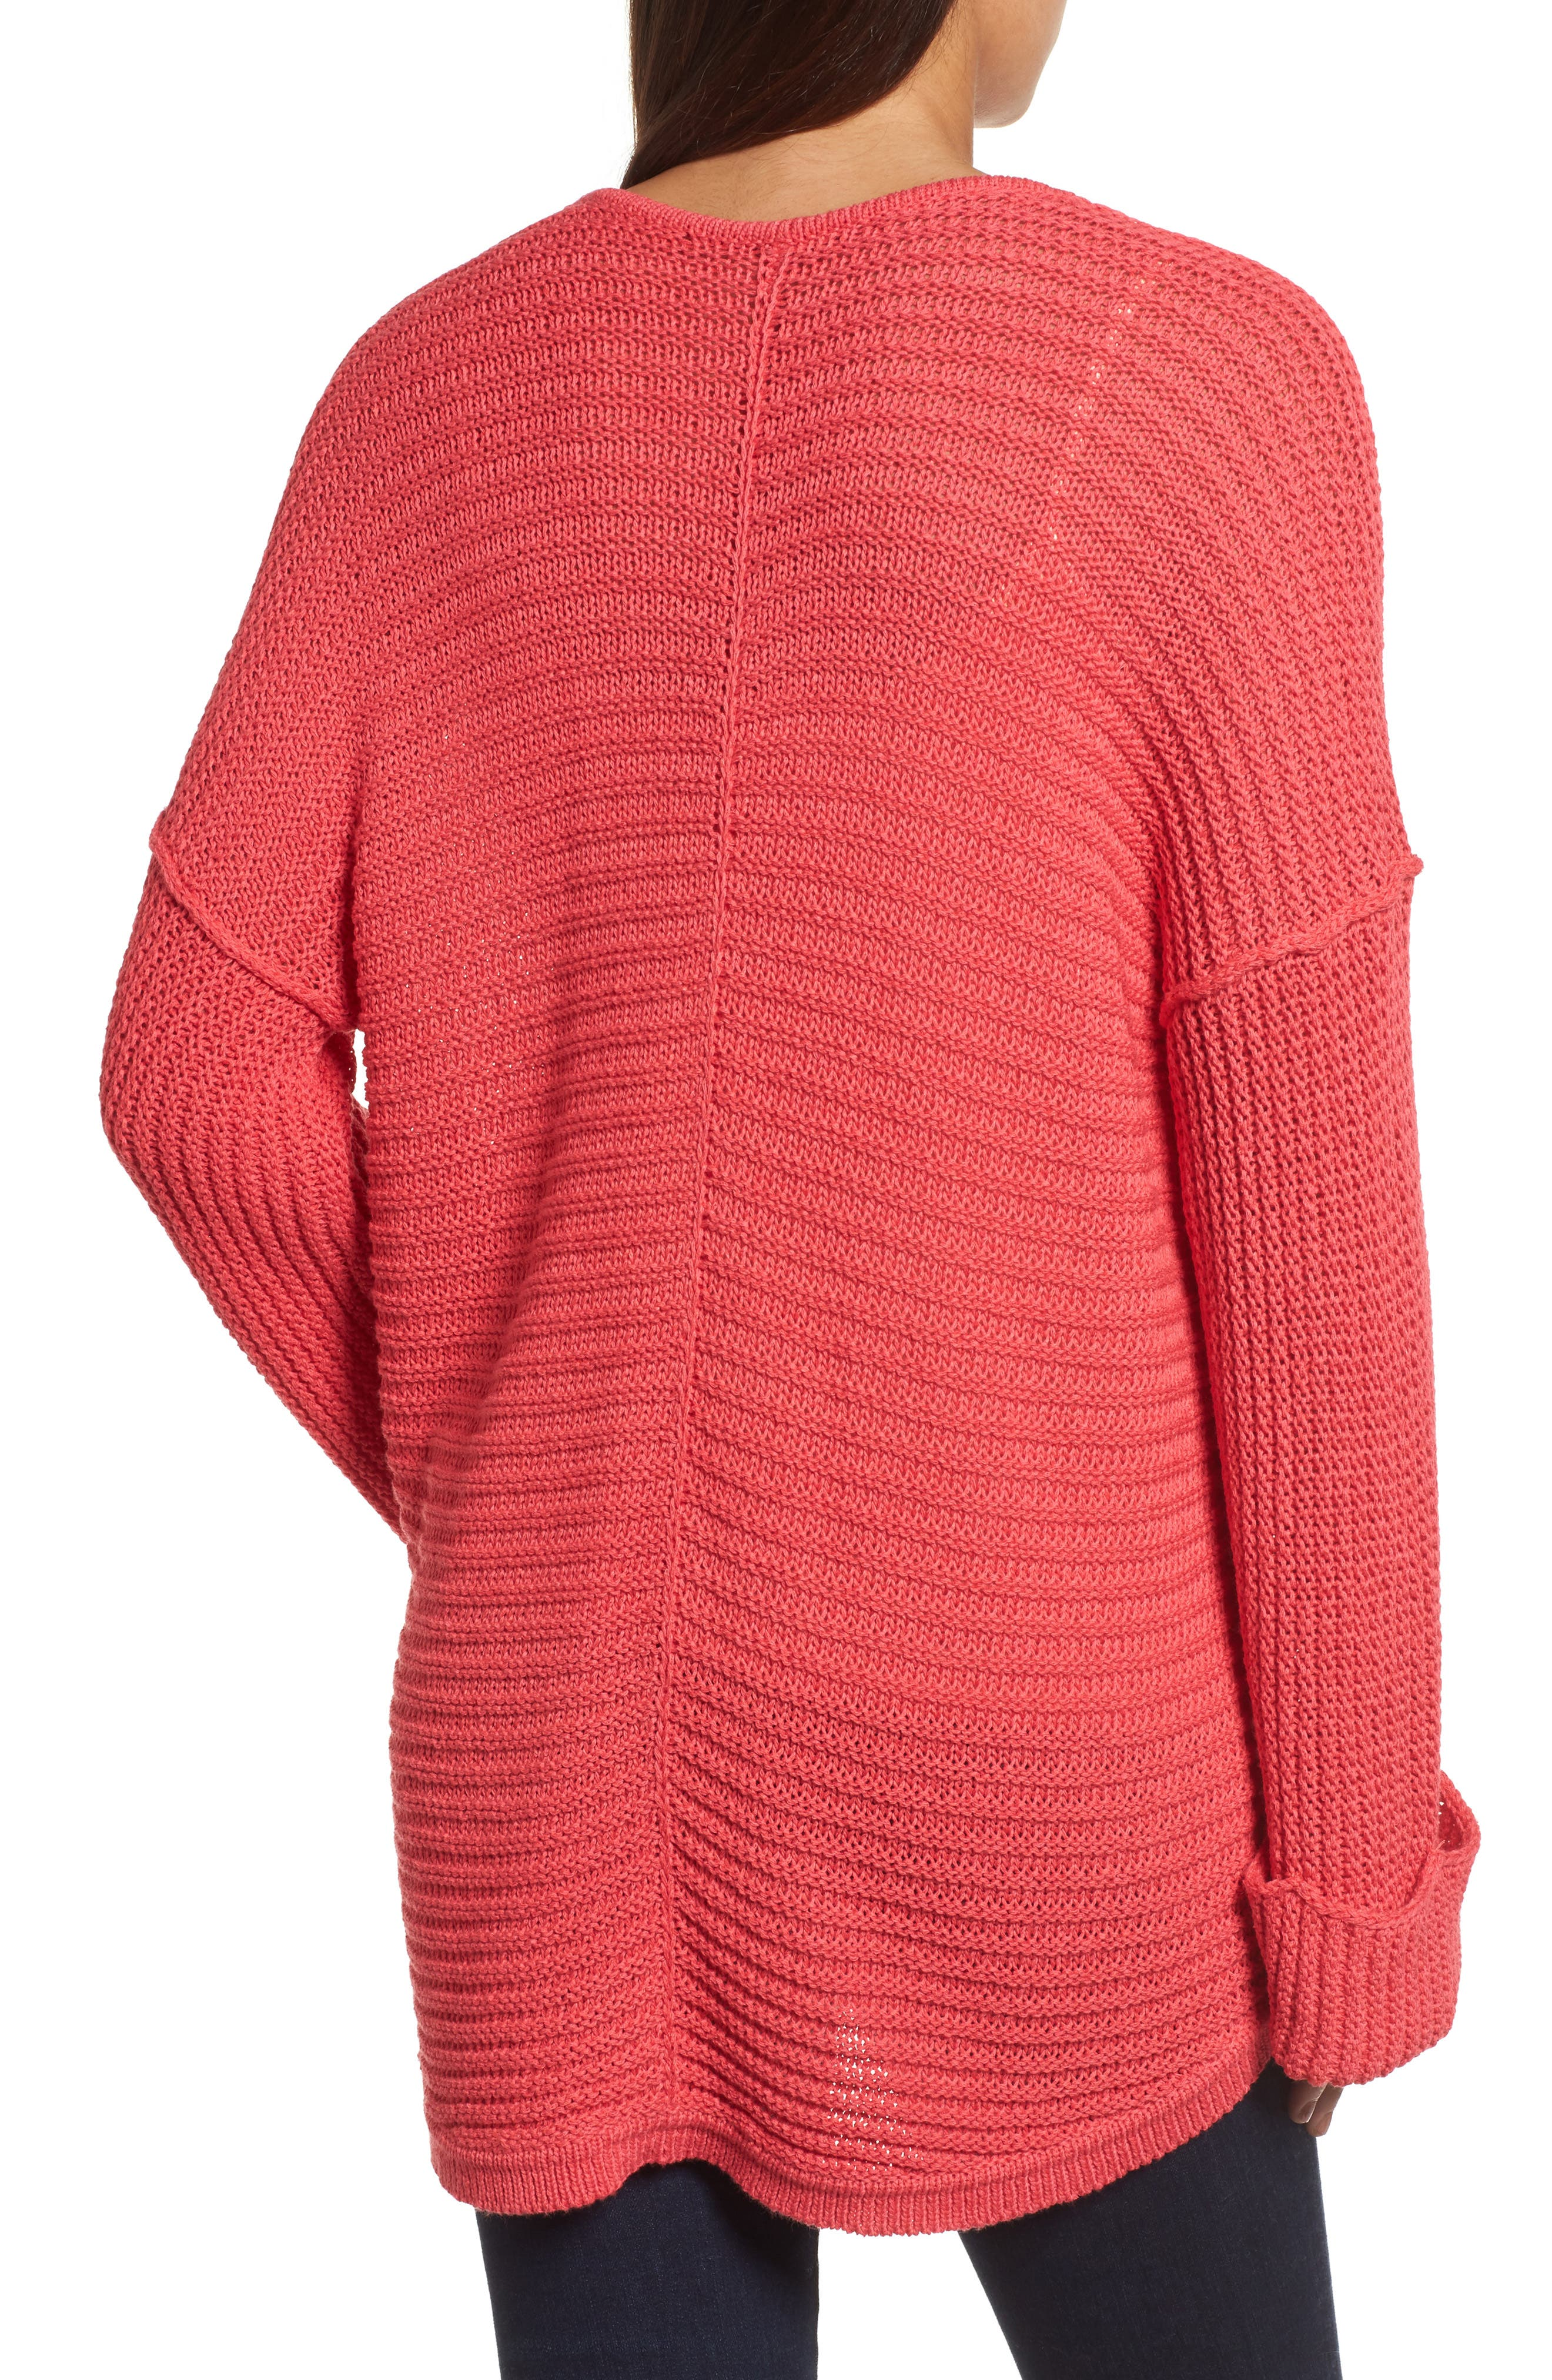 Cuffed Sleeve Sweater,                             Alternate thumbnail 6, color,